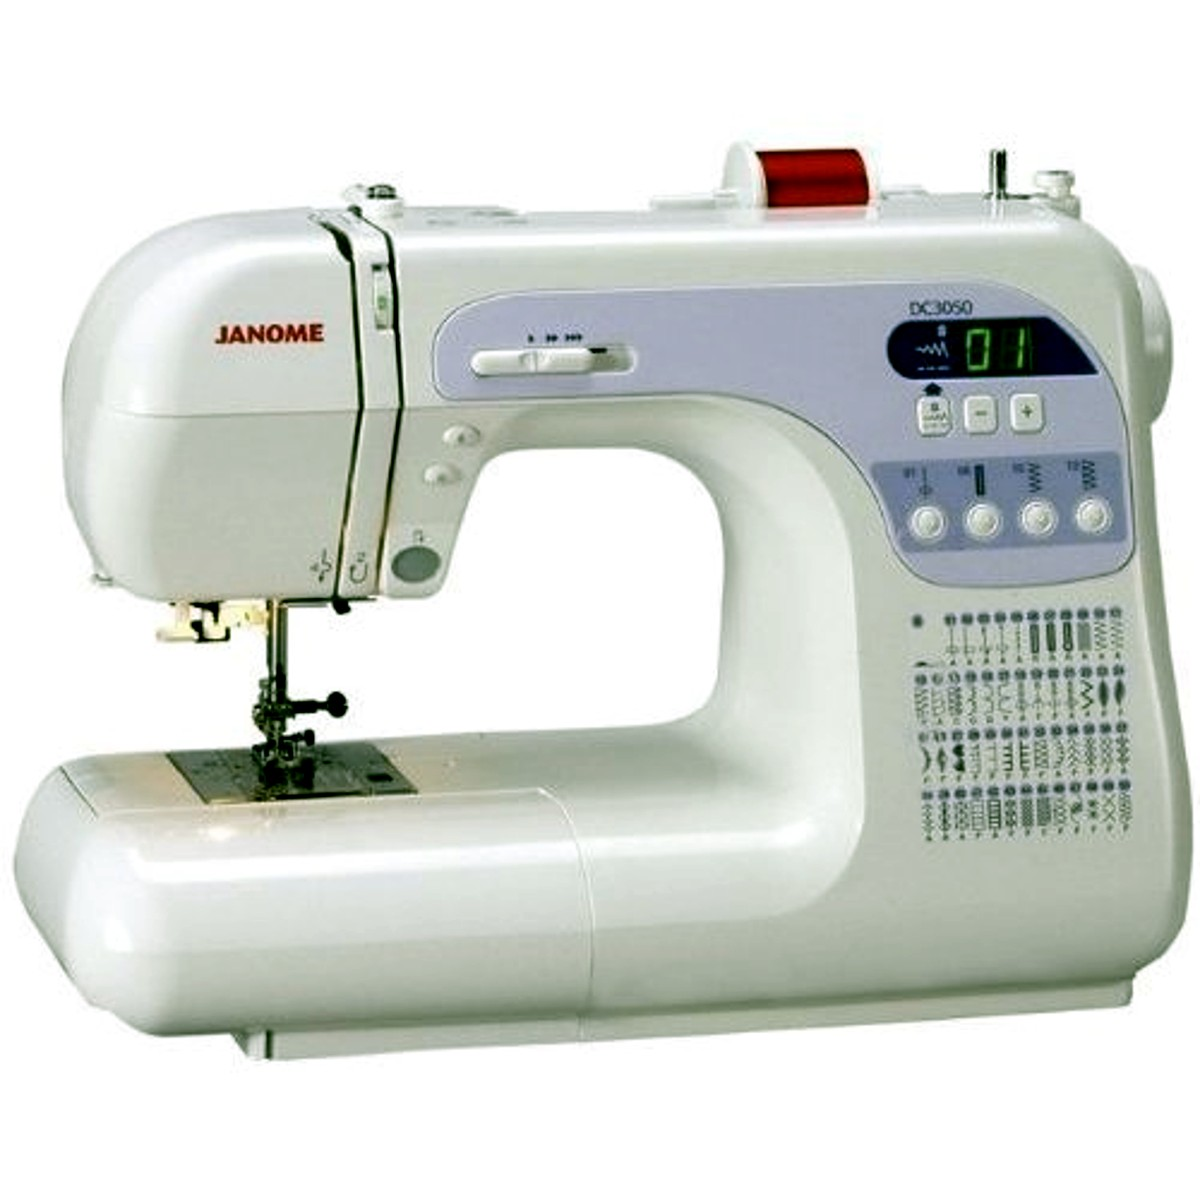 Janome dc sewing machine review